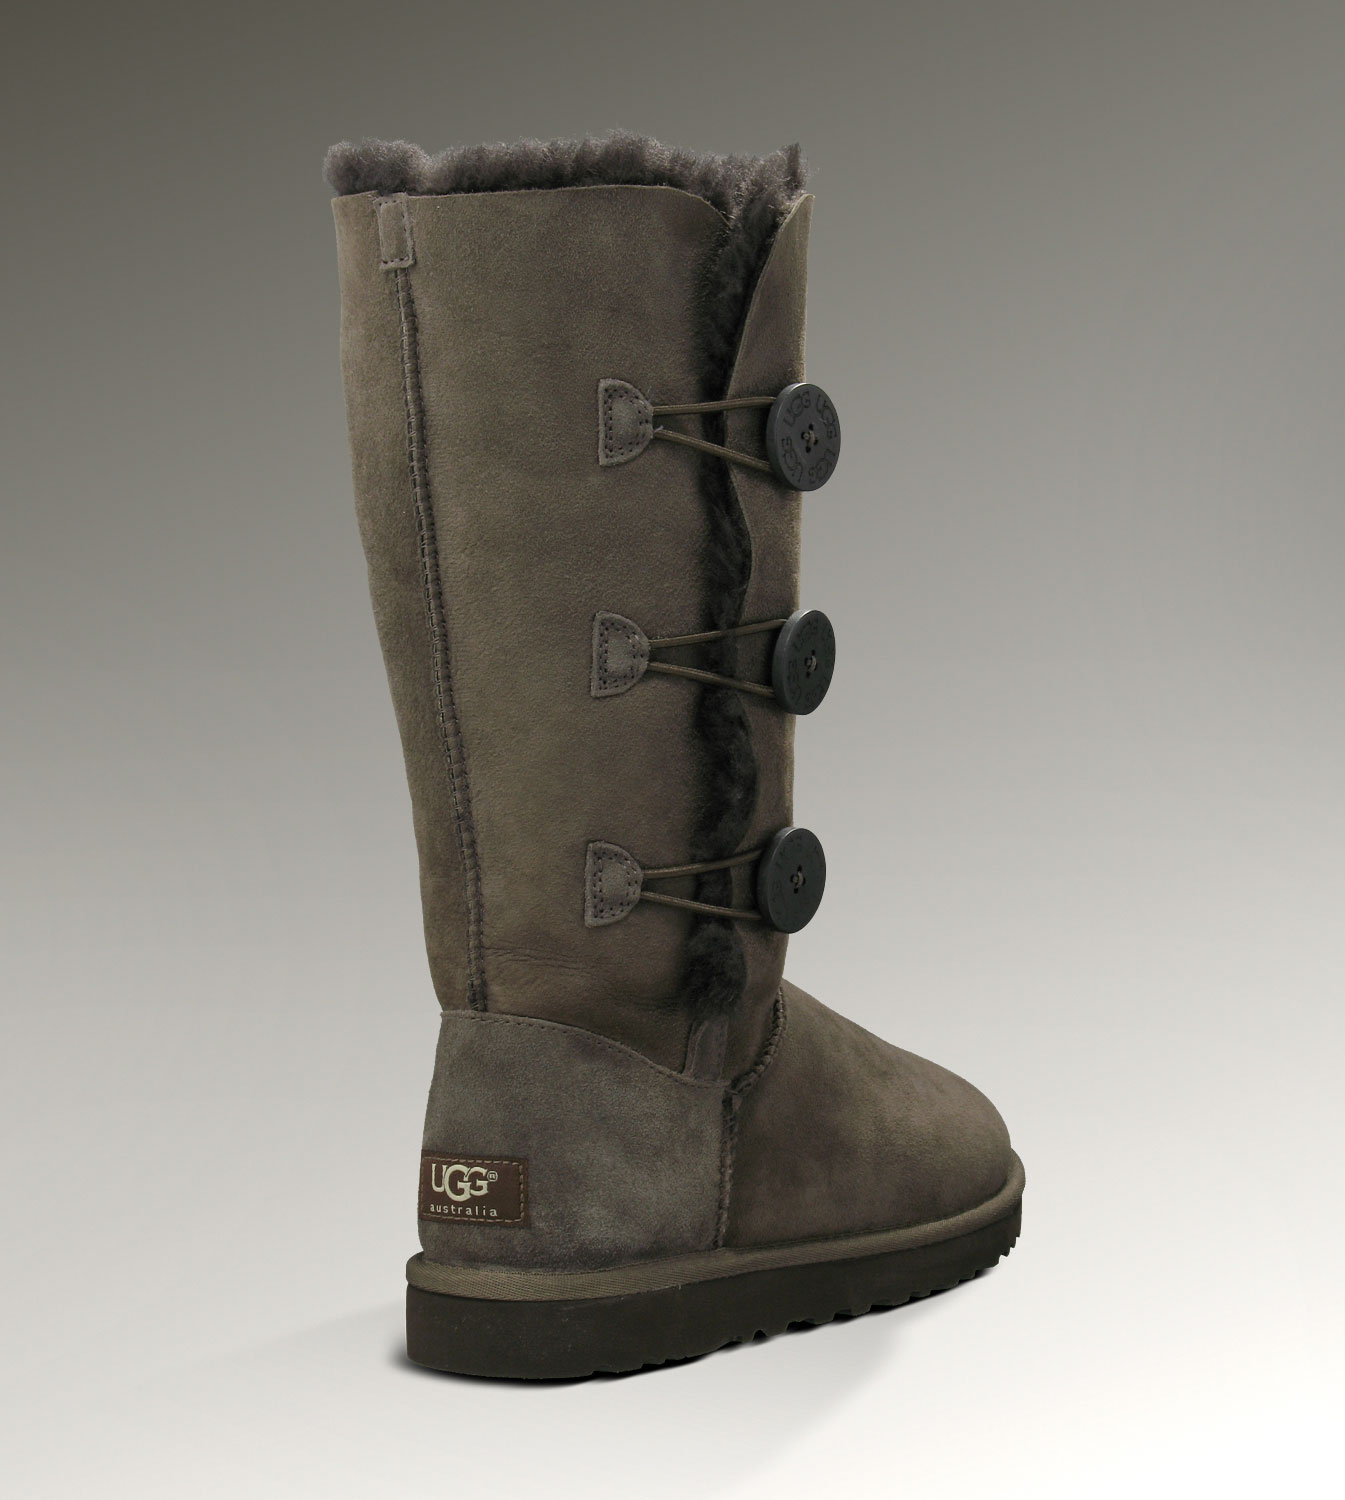 UGG Bailey Button Triplet 1873 Chocolate Boots